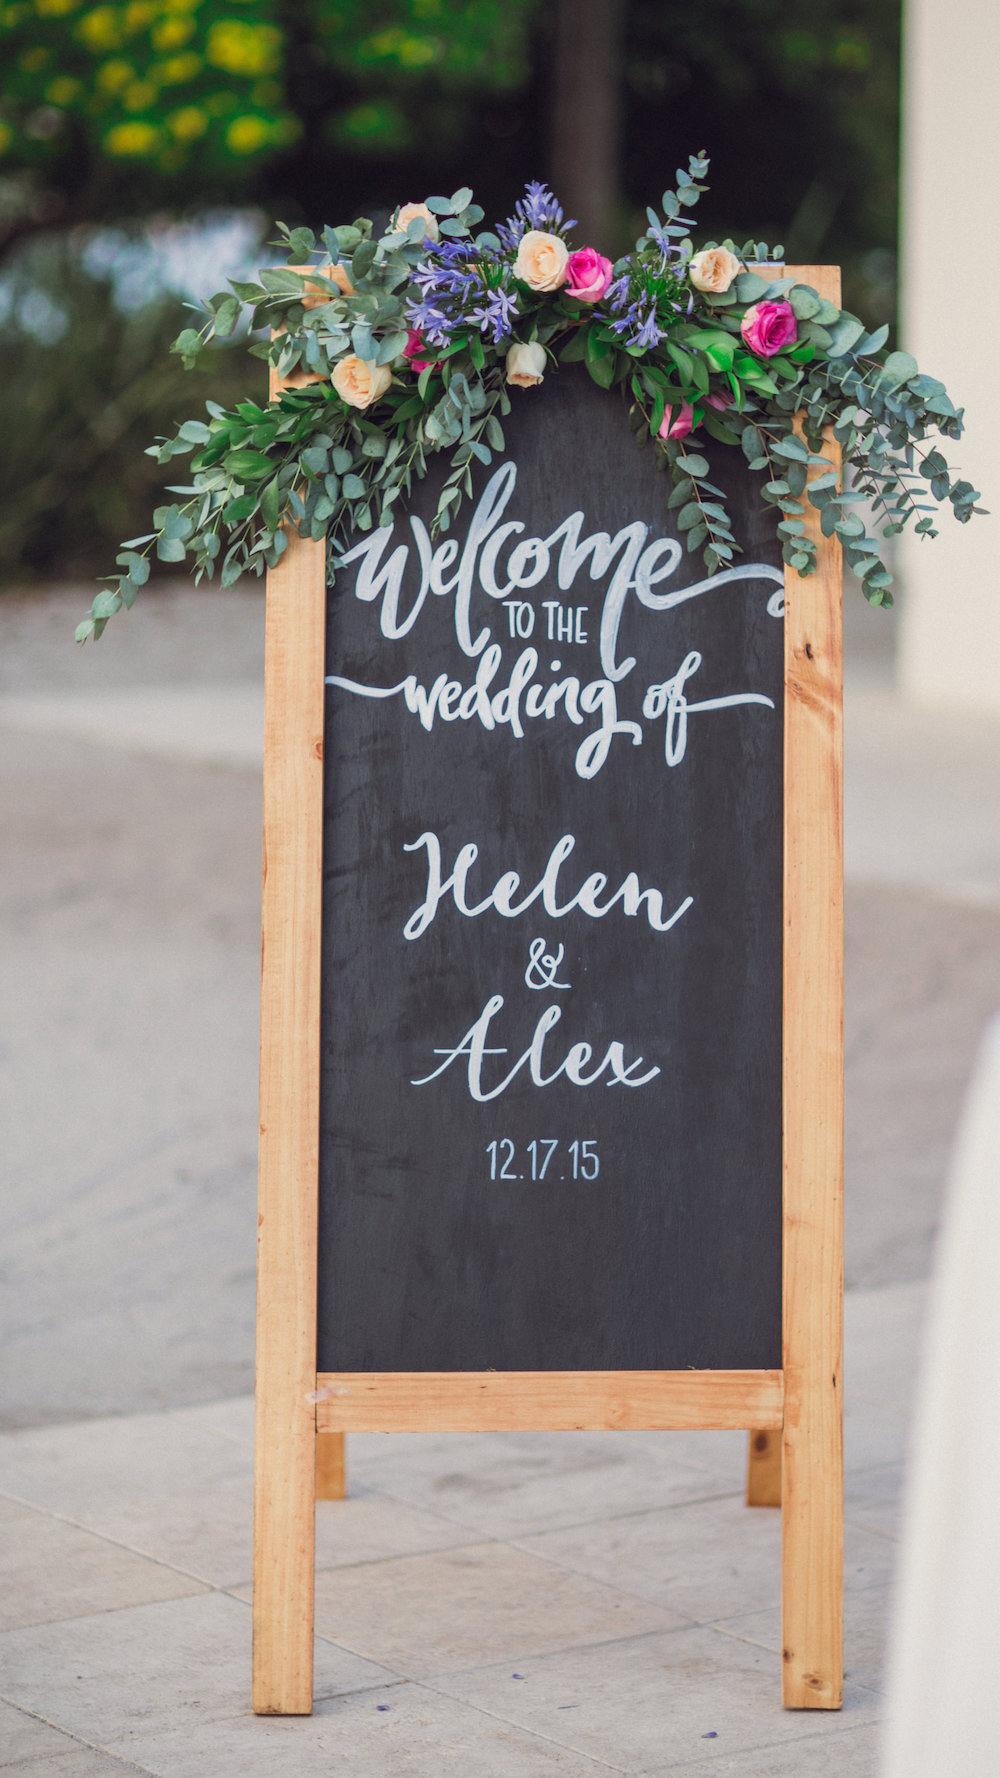 Helen_Alex_Wedding-197.jpg